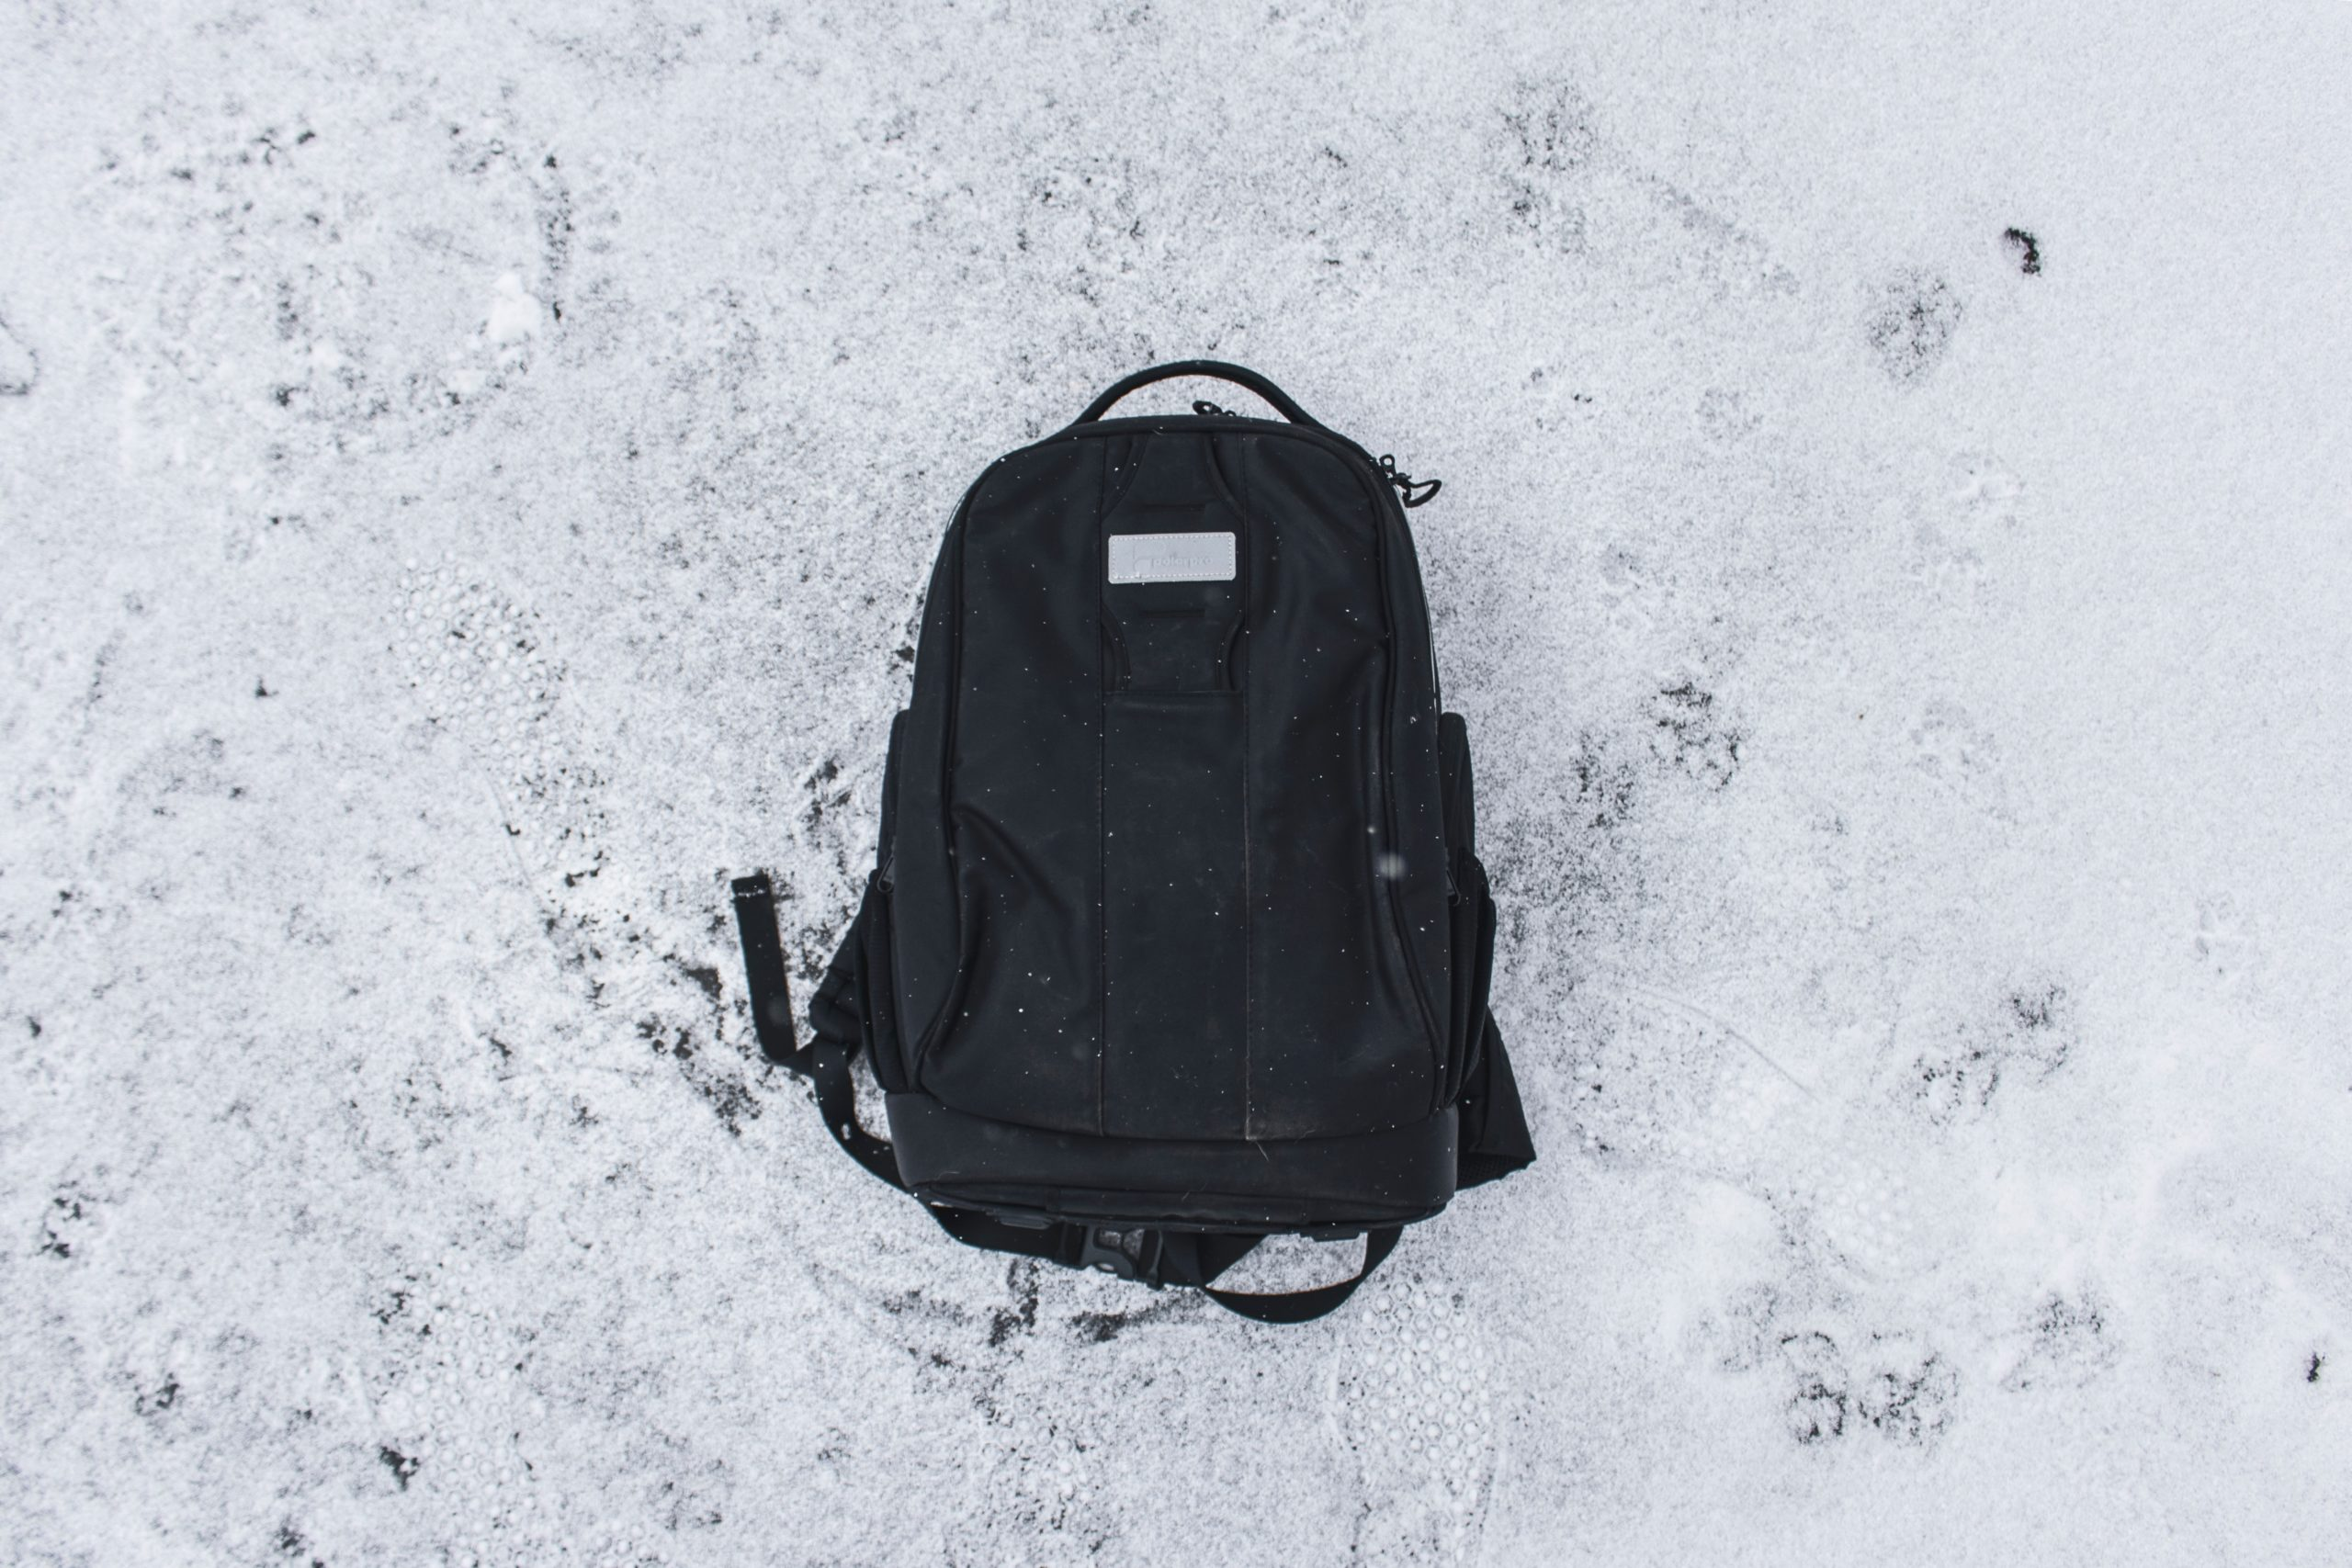 The Advantages of a Backpack